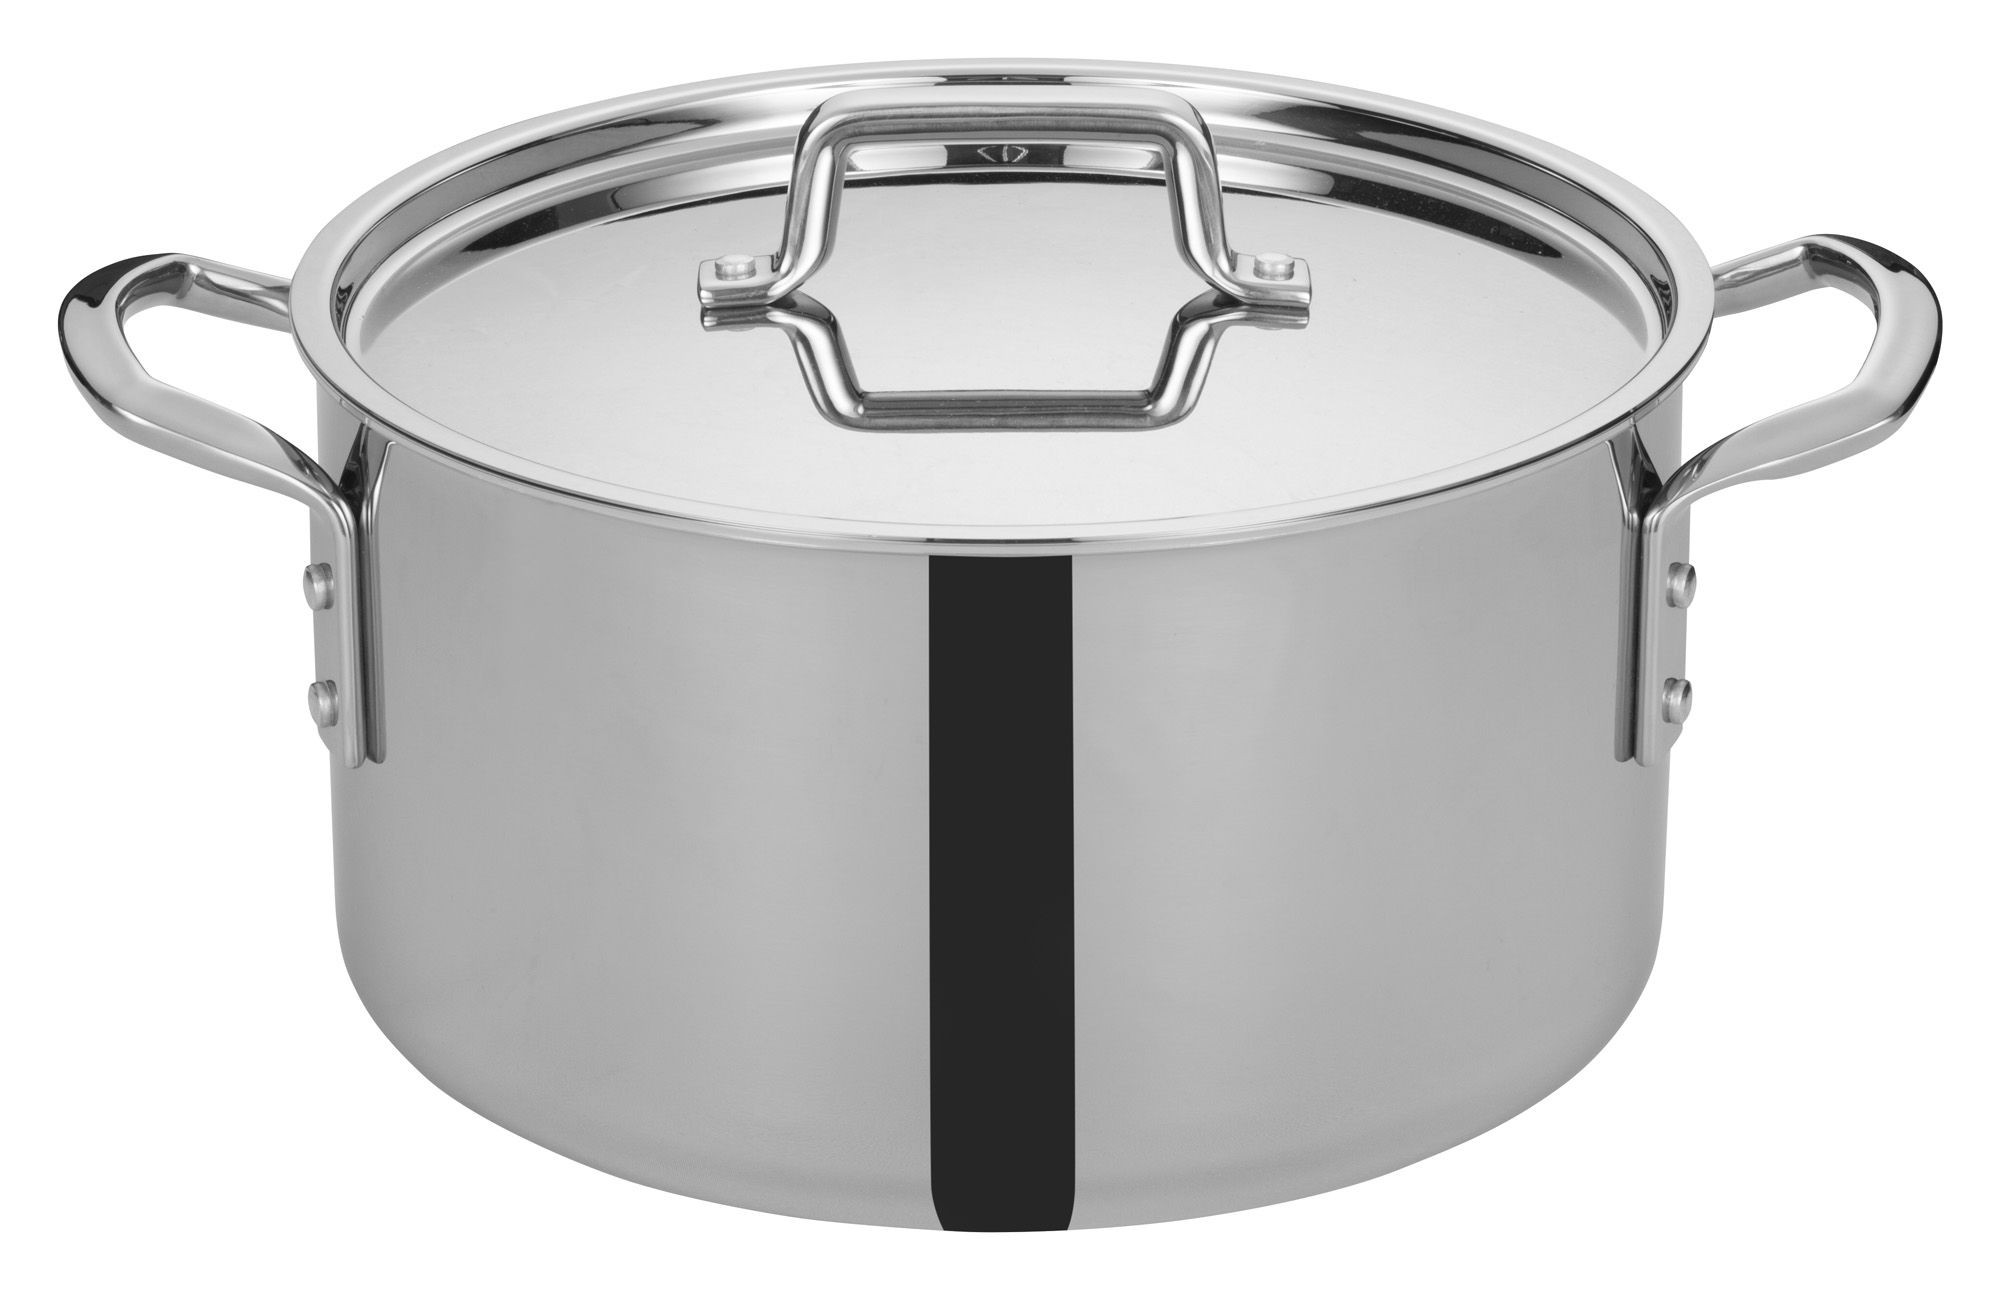 Winco TGSP-12 Tri-Ply Stainless Steel 12 Qt. Stock Pot with Cover